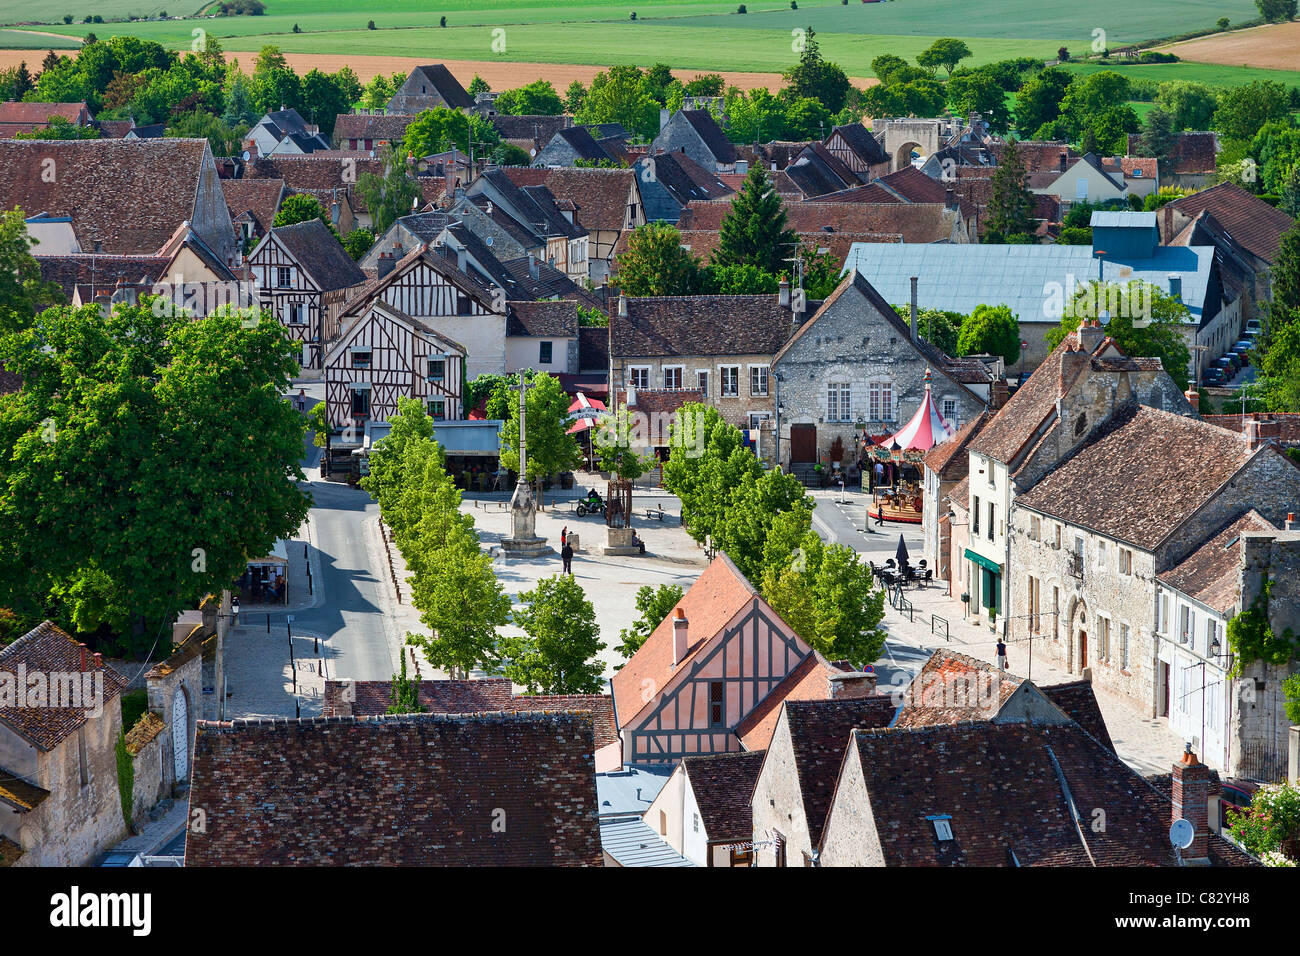 France, Seine et Marne, Provins, listed as World Heritage by UNESCO, High angle view of houses - Stock Image